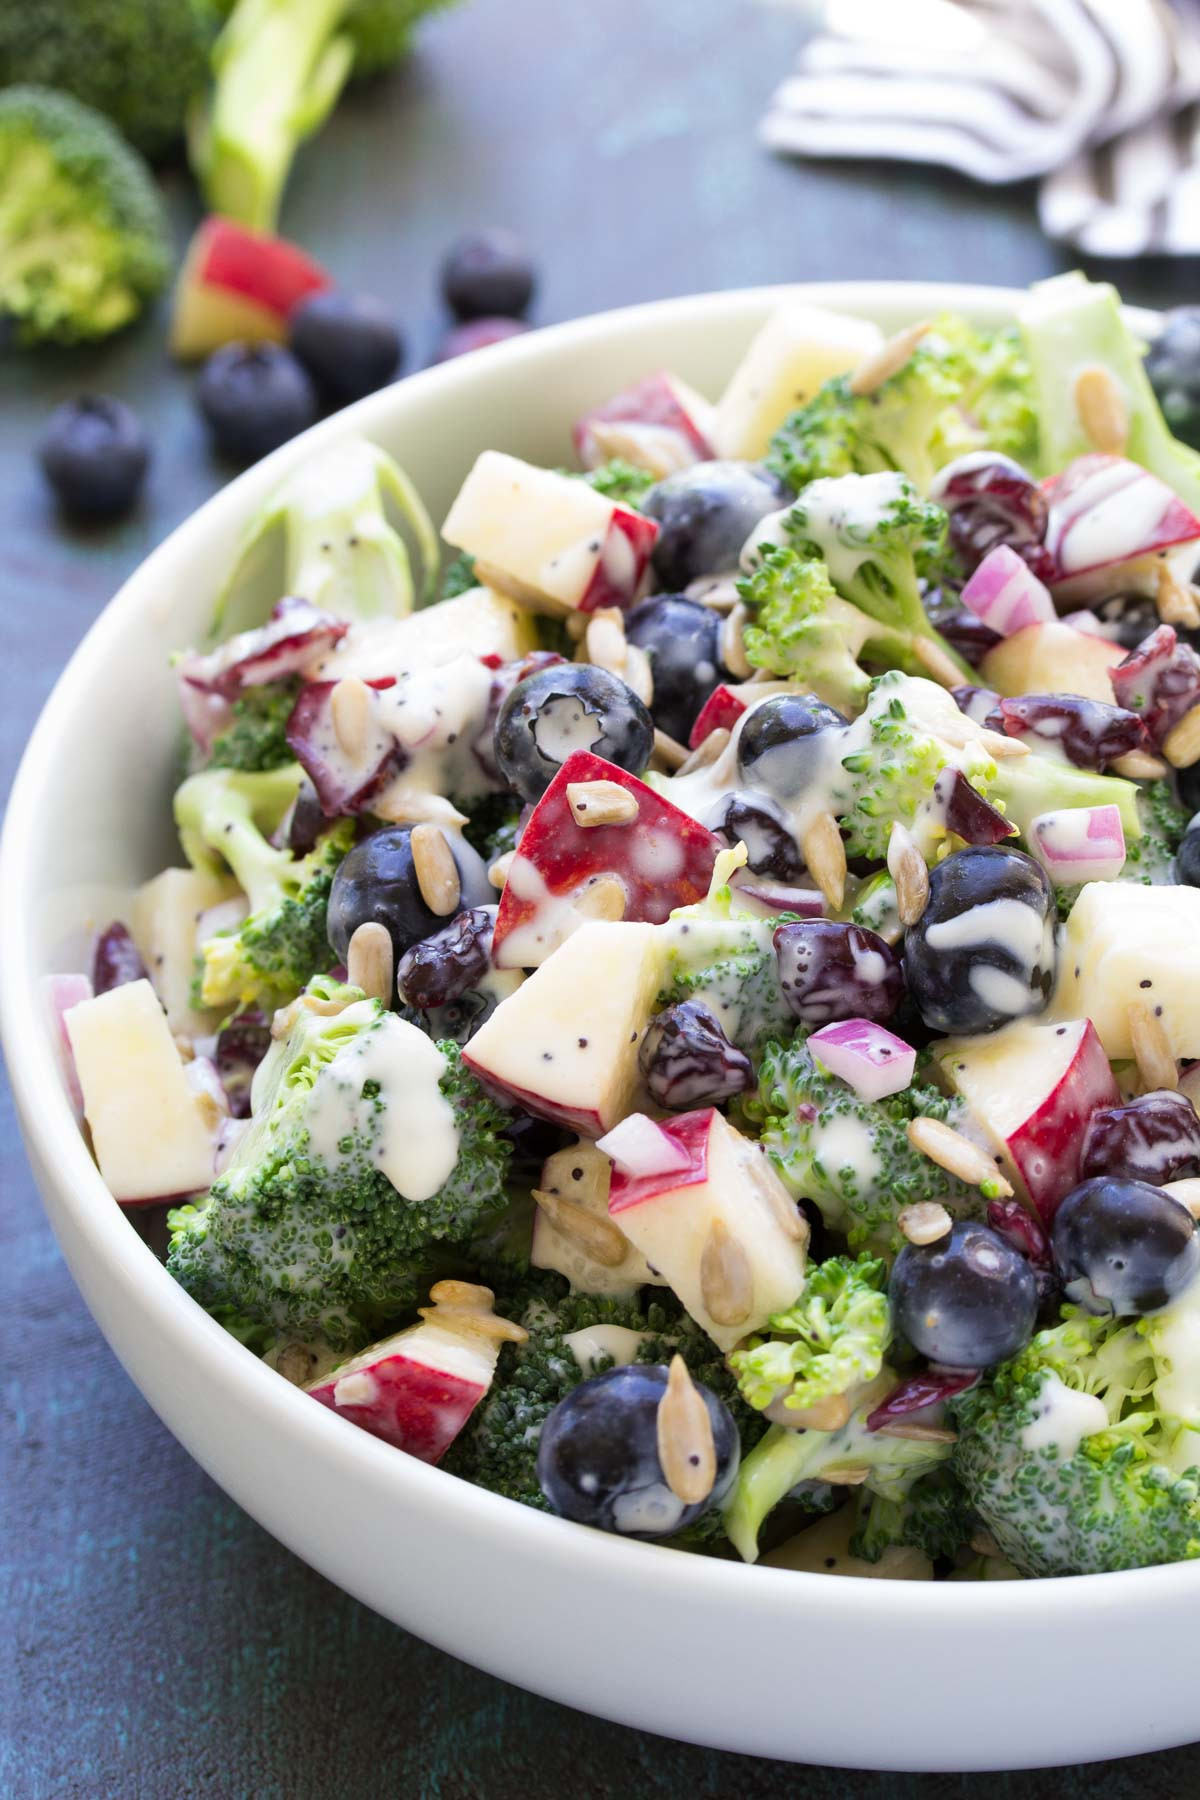 Apple Salad Recipes Healthy  No Mayo Broccoli Salad with Blueberries and Apple